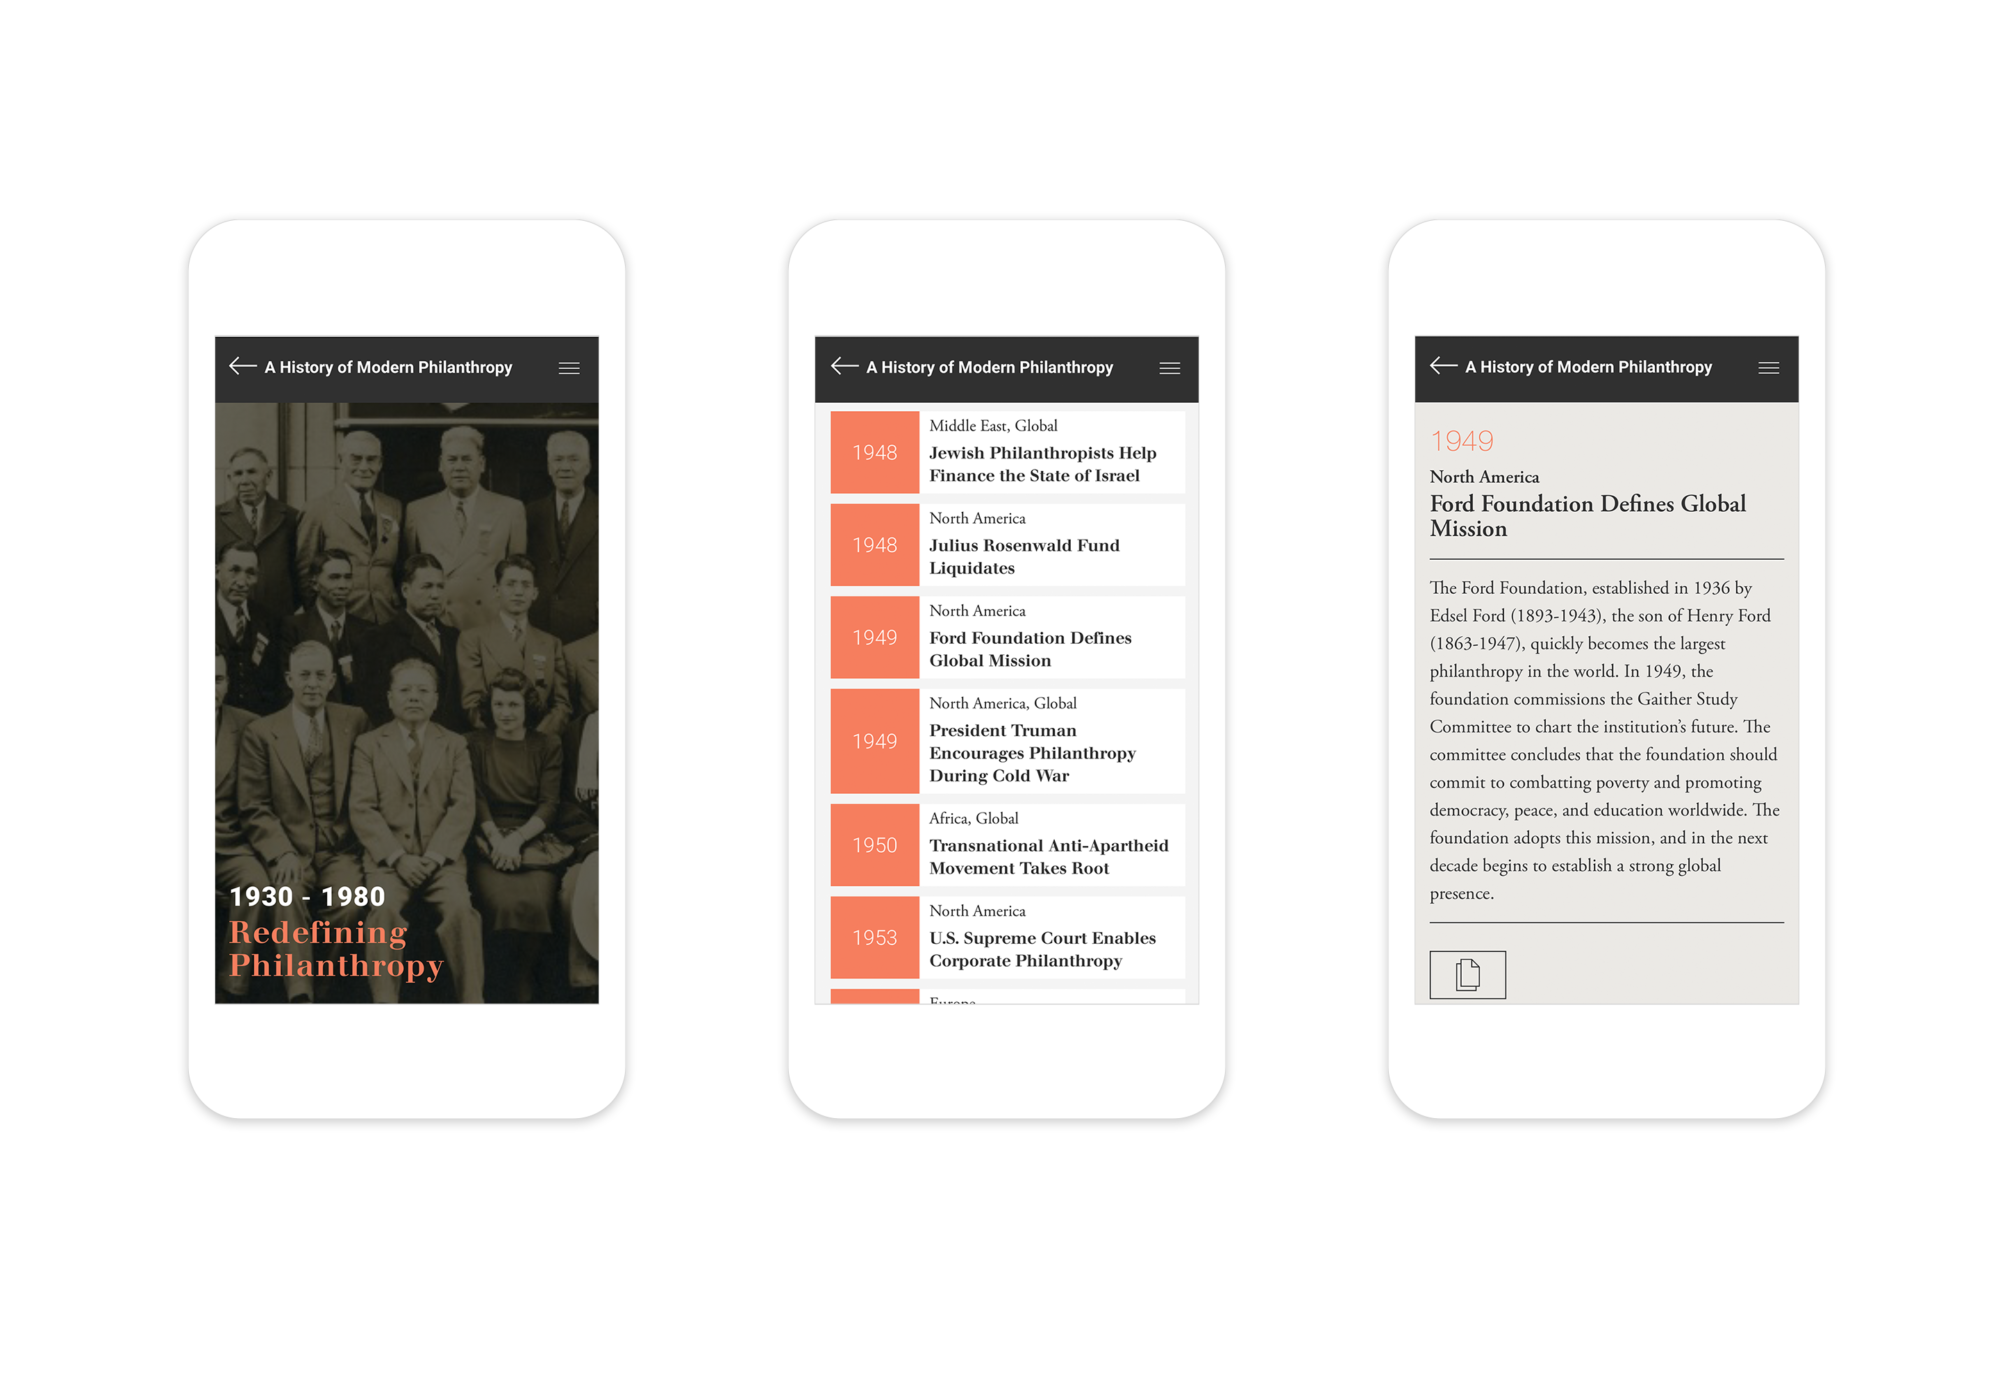 3 responsive mobile page designs: intro to the Modern Philanthropy era (1930-1980), interactive timeline, and a detailed timeline entry